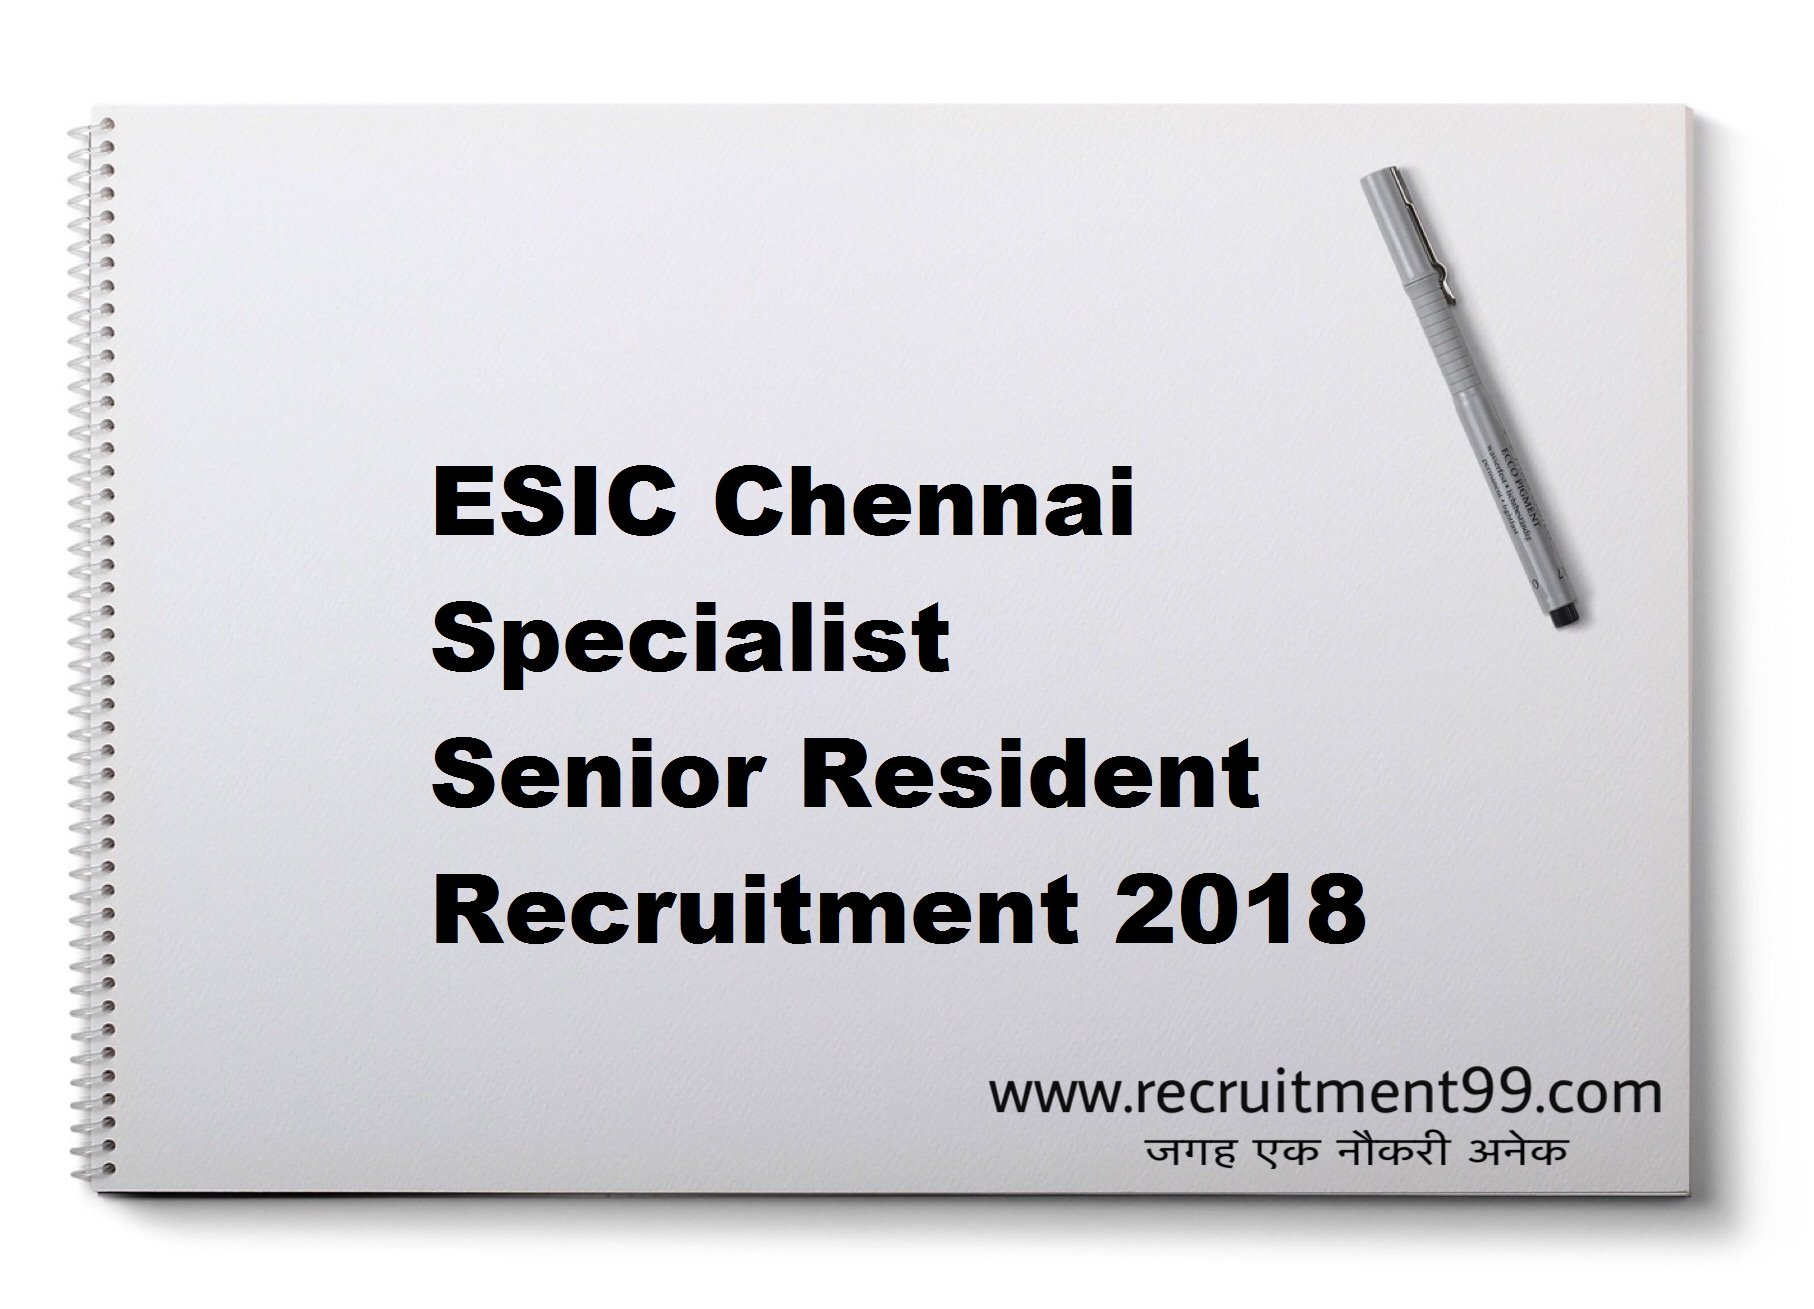 ESIC Chennai Specialist Senior Resident Interview Admit Card Result 2018